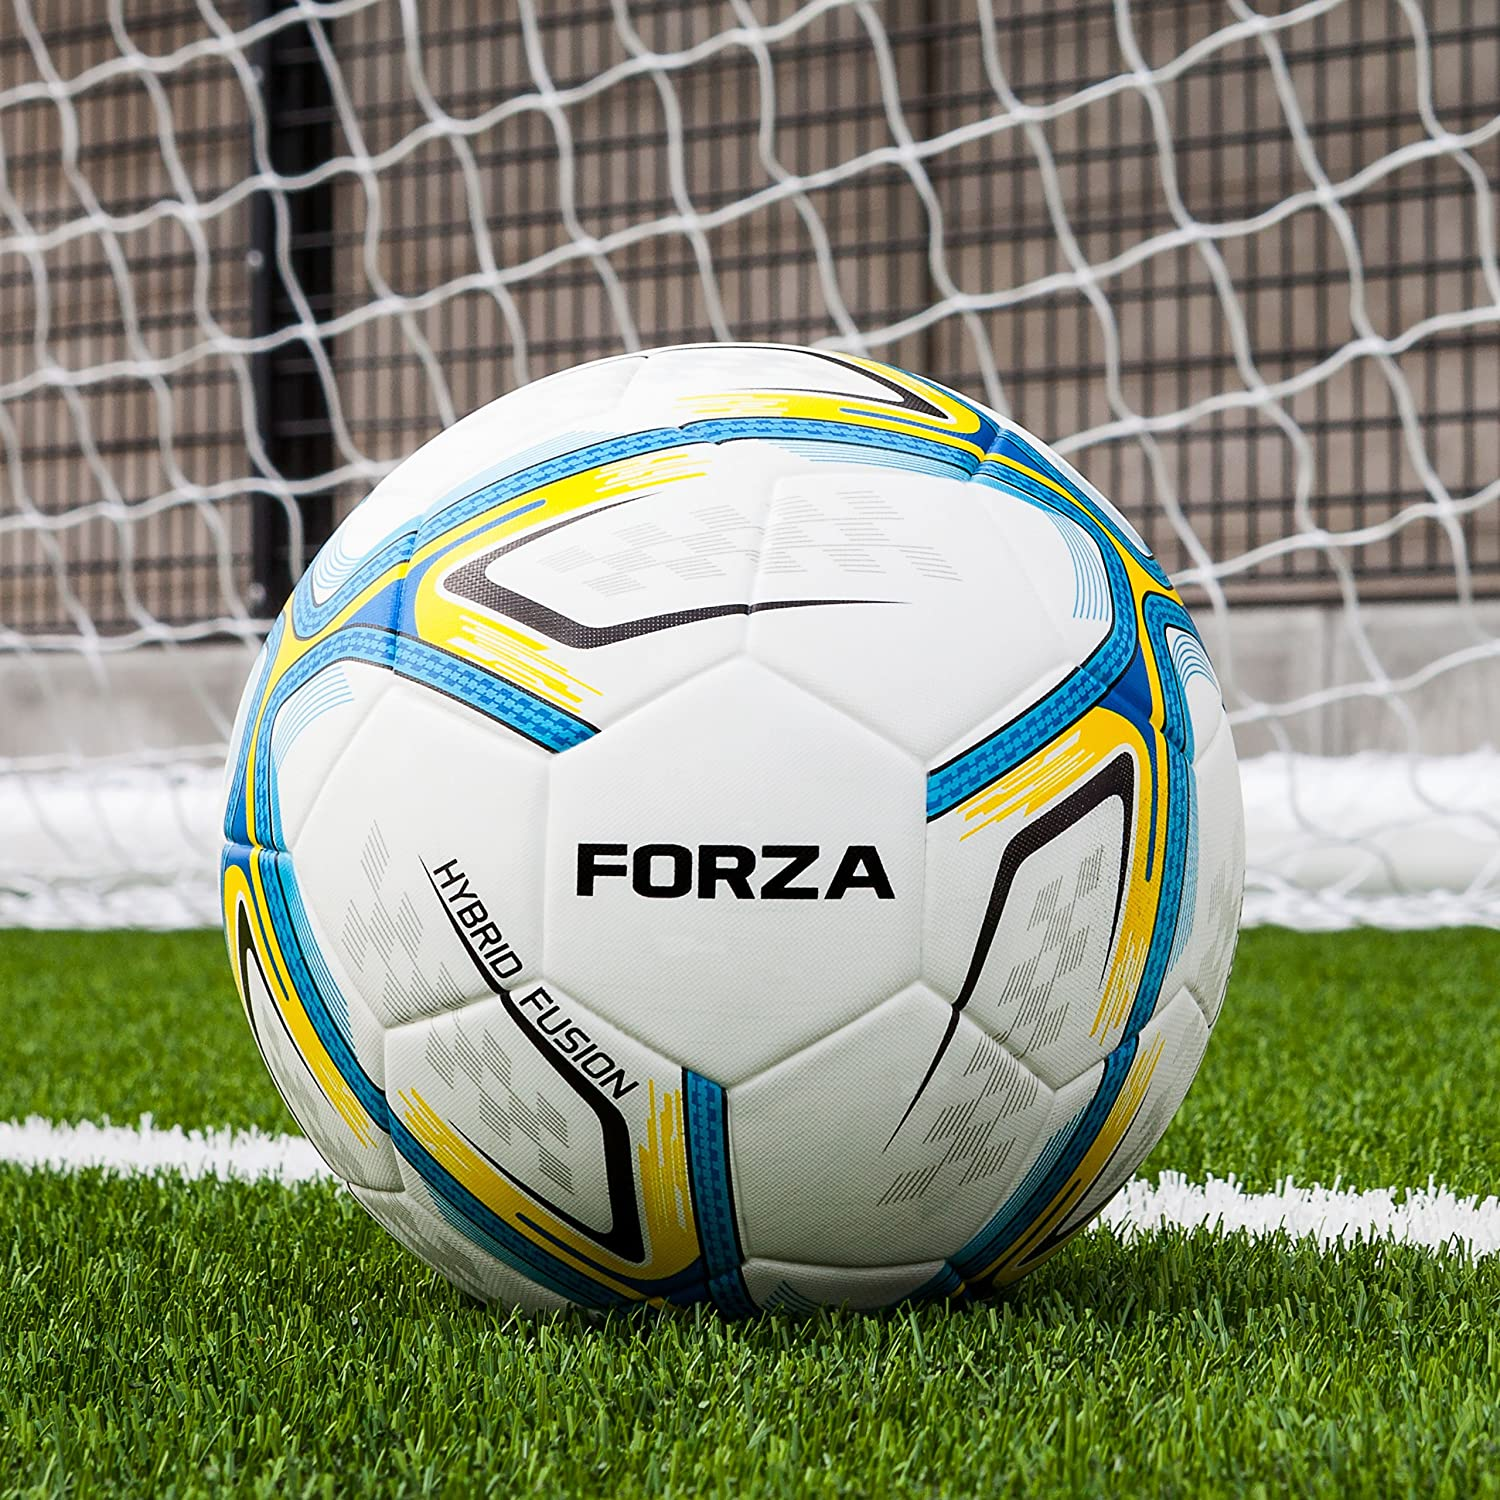 FORZA Pro Training Fusion Soccer Ball   Premium Training Ball for Professional Soccer Clubs   Artificial Surface Training Soccer Balls   Choose Your Size [Net World Sports]